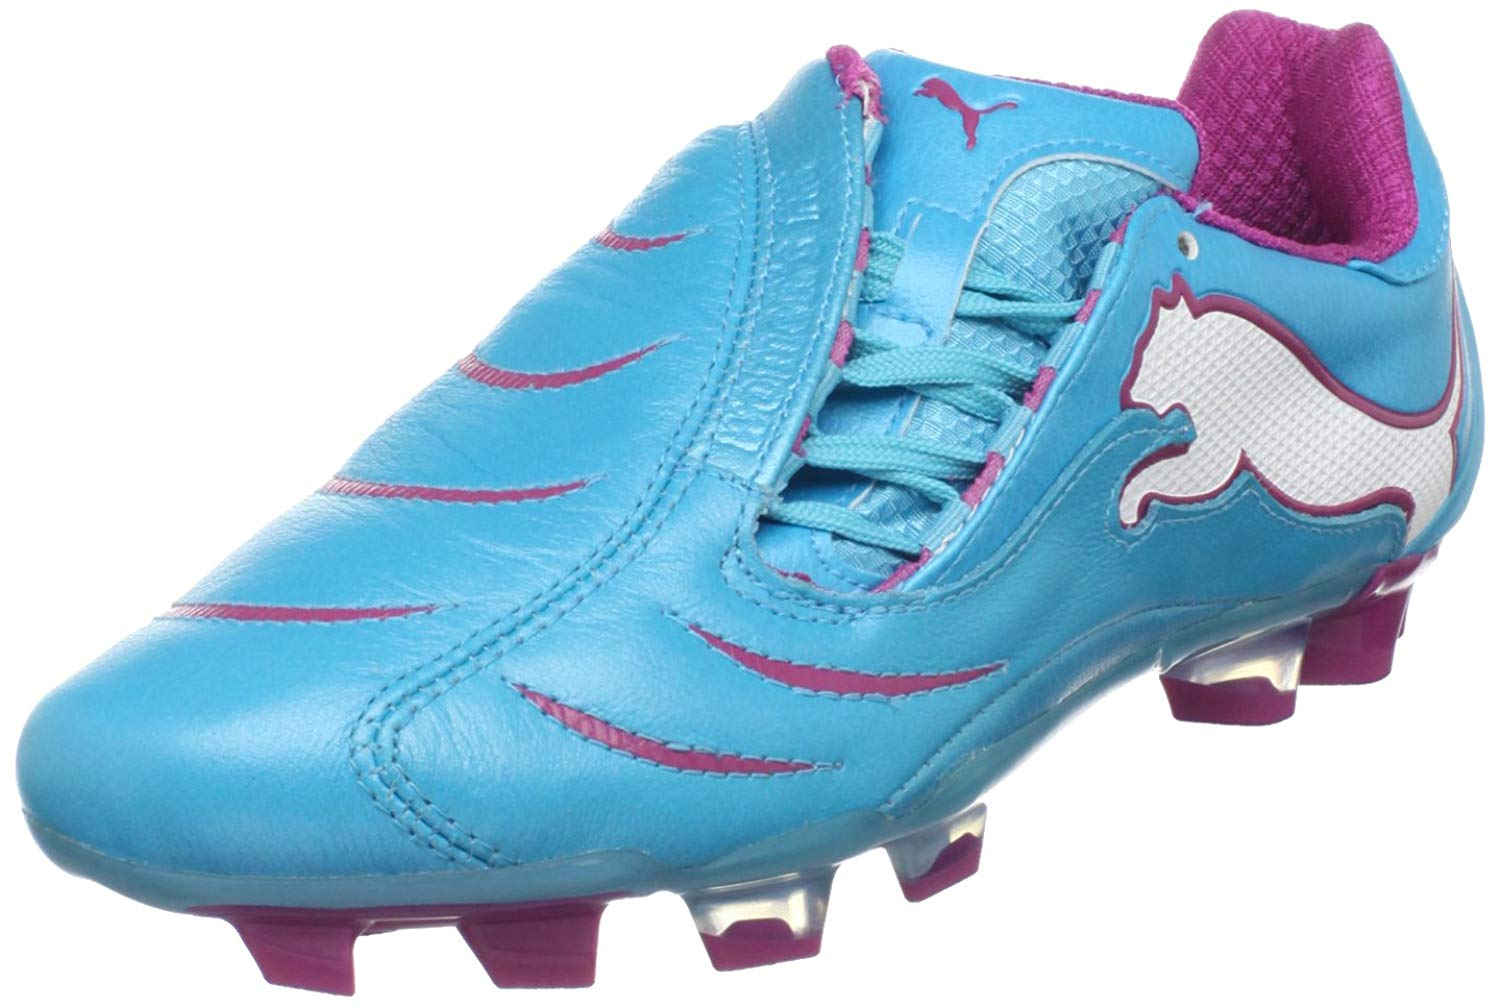 Puma cleats amazon.com | puma womenu0027s powercat 2.10 fg soccer cleat | soccer YZFELZD